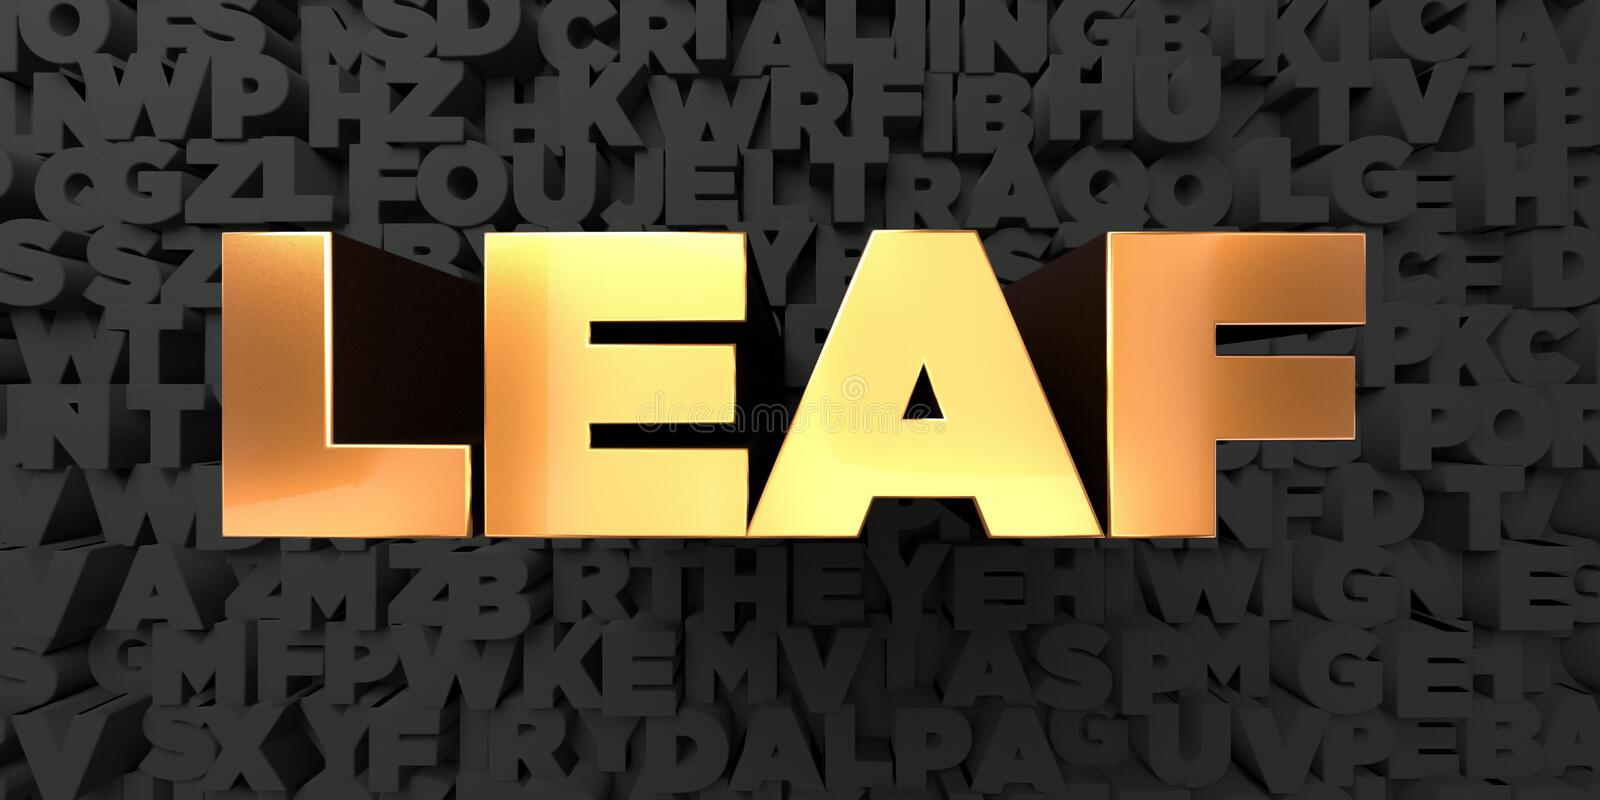 Leaf - Gold text on black background - 3D rendered royalty free stock picture royalty free illustration